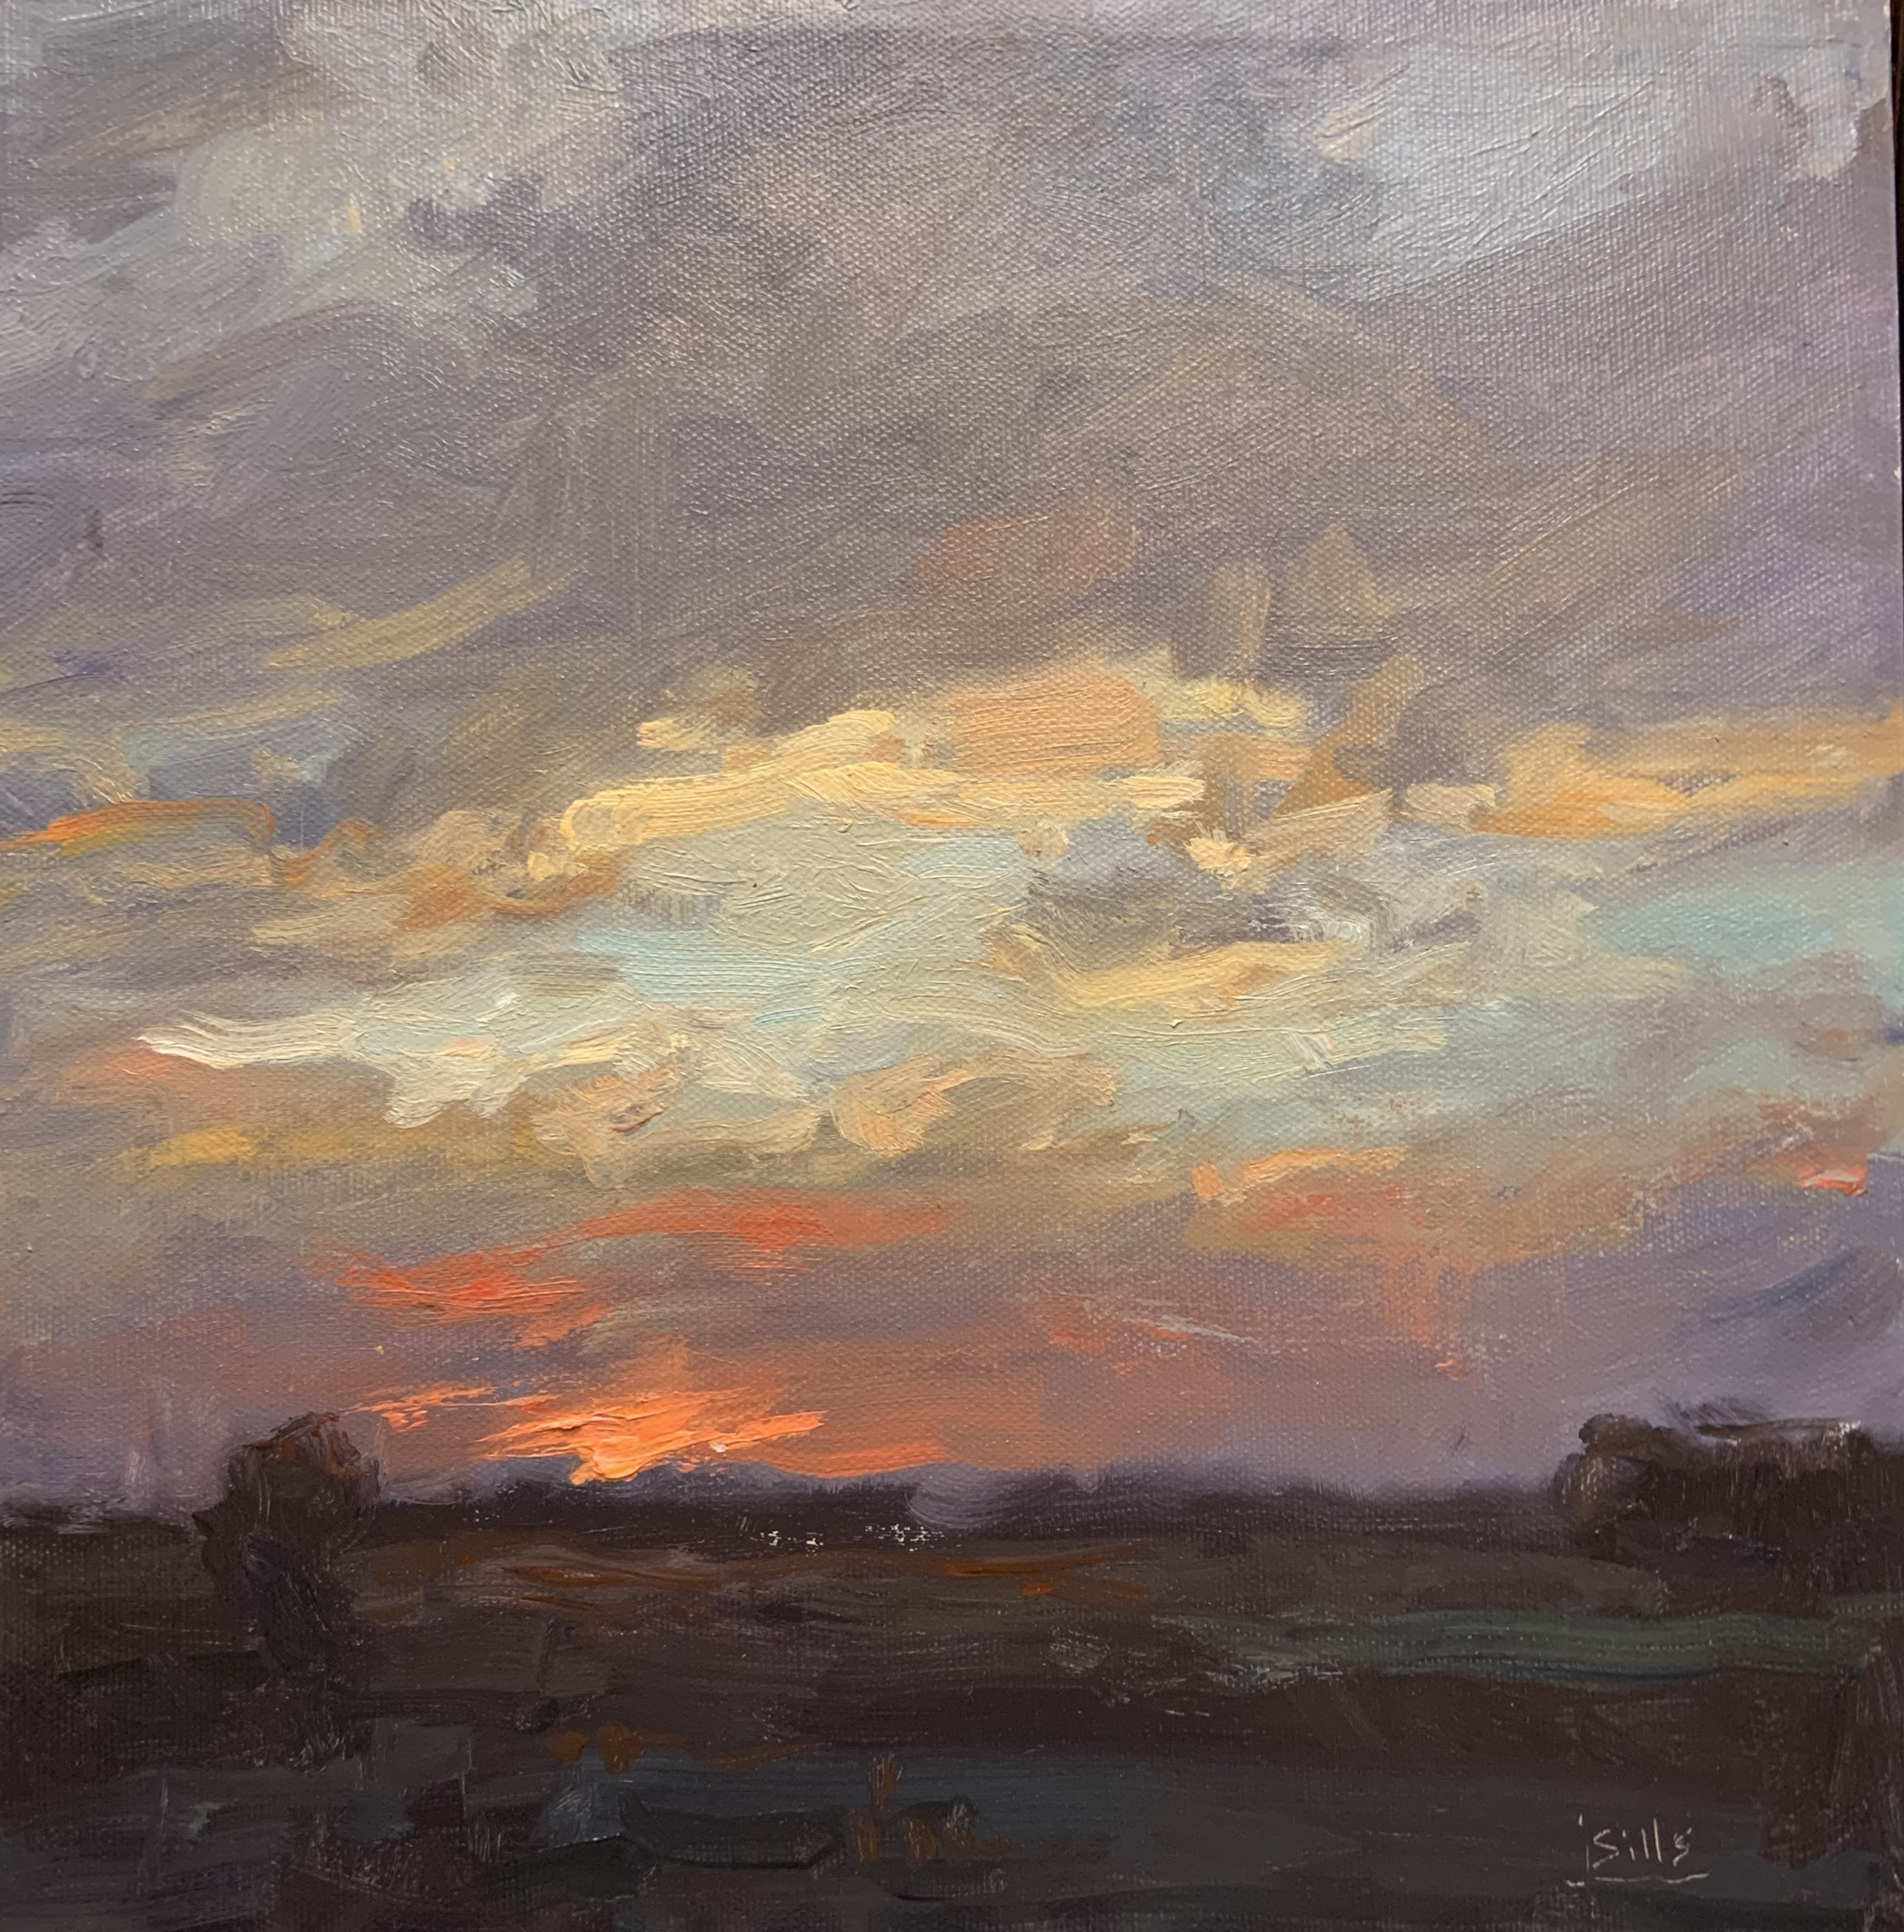 Days Fiery end-Sills, oil 12x12 $3200